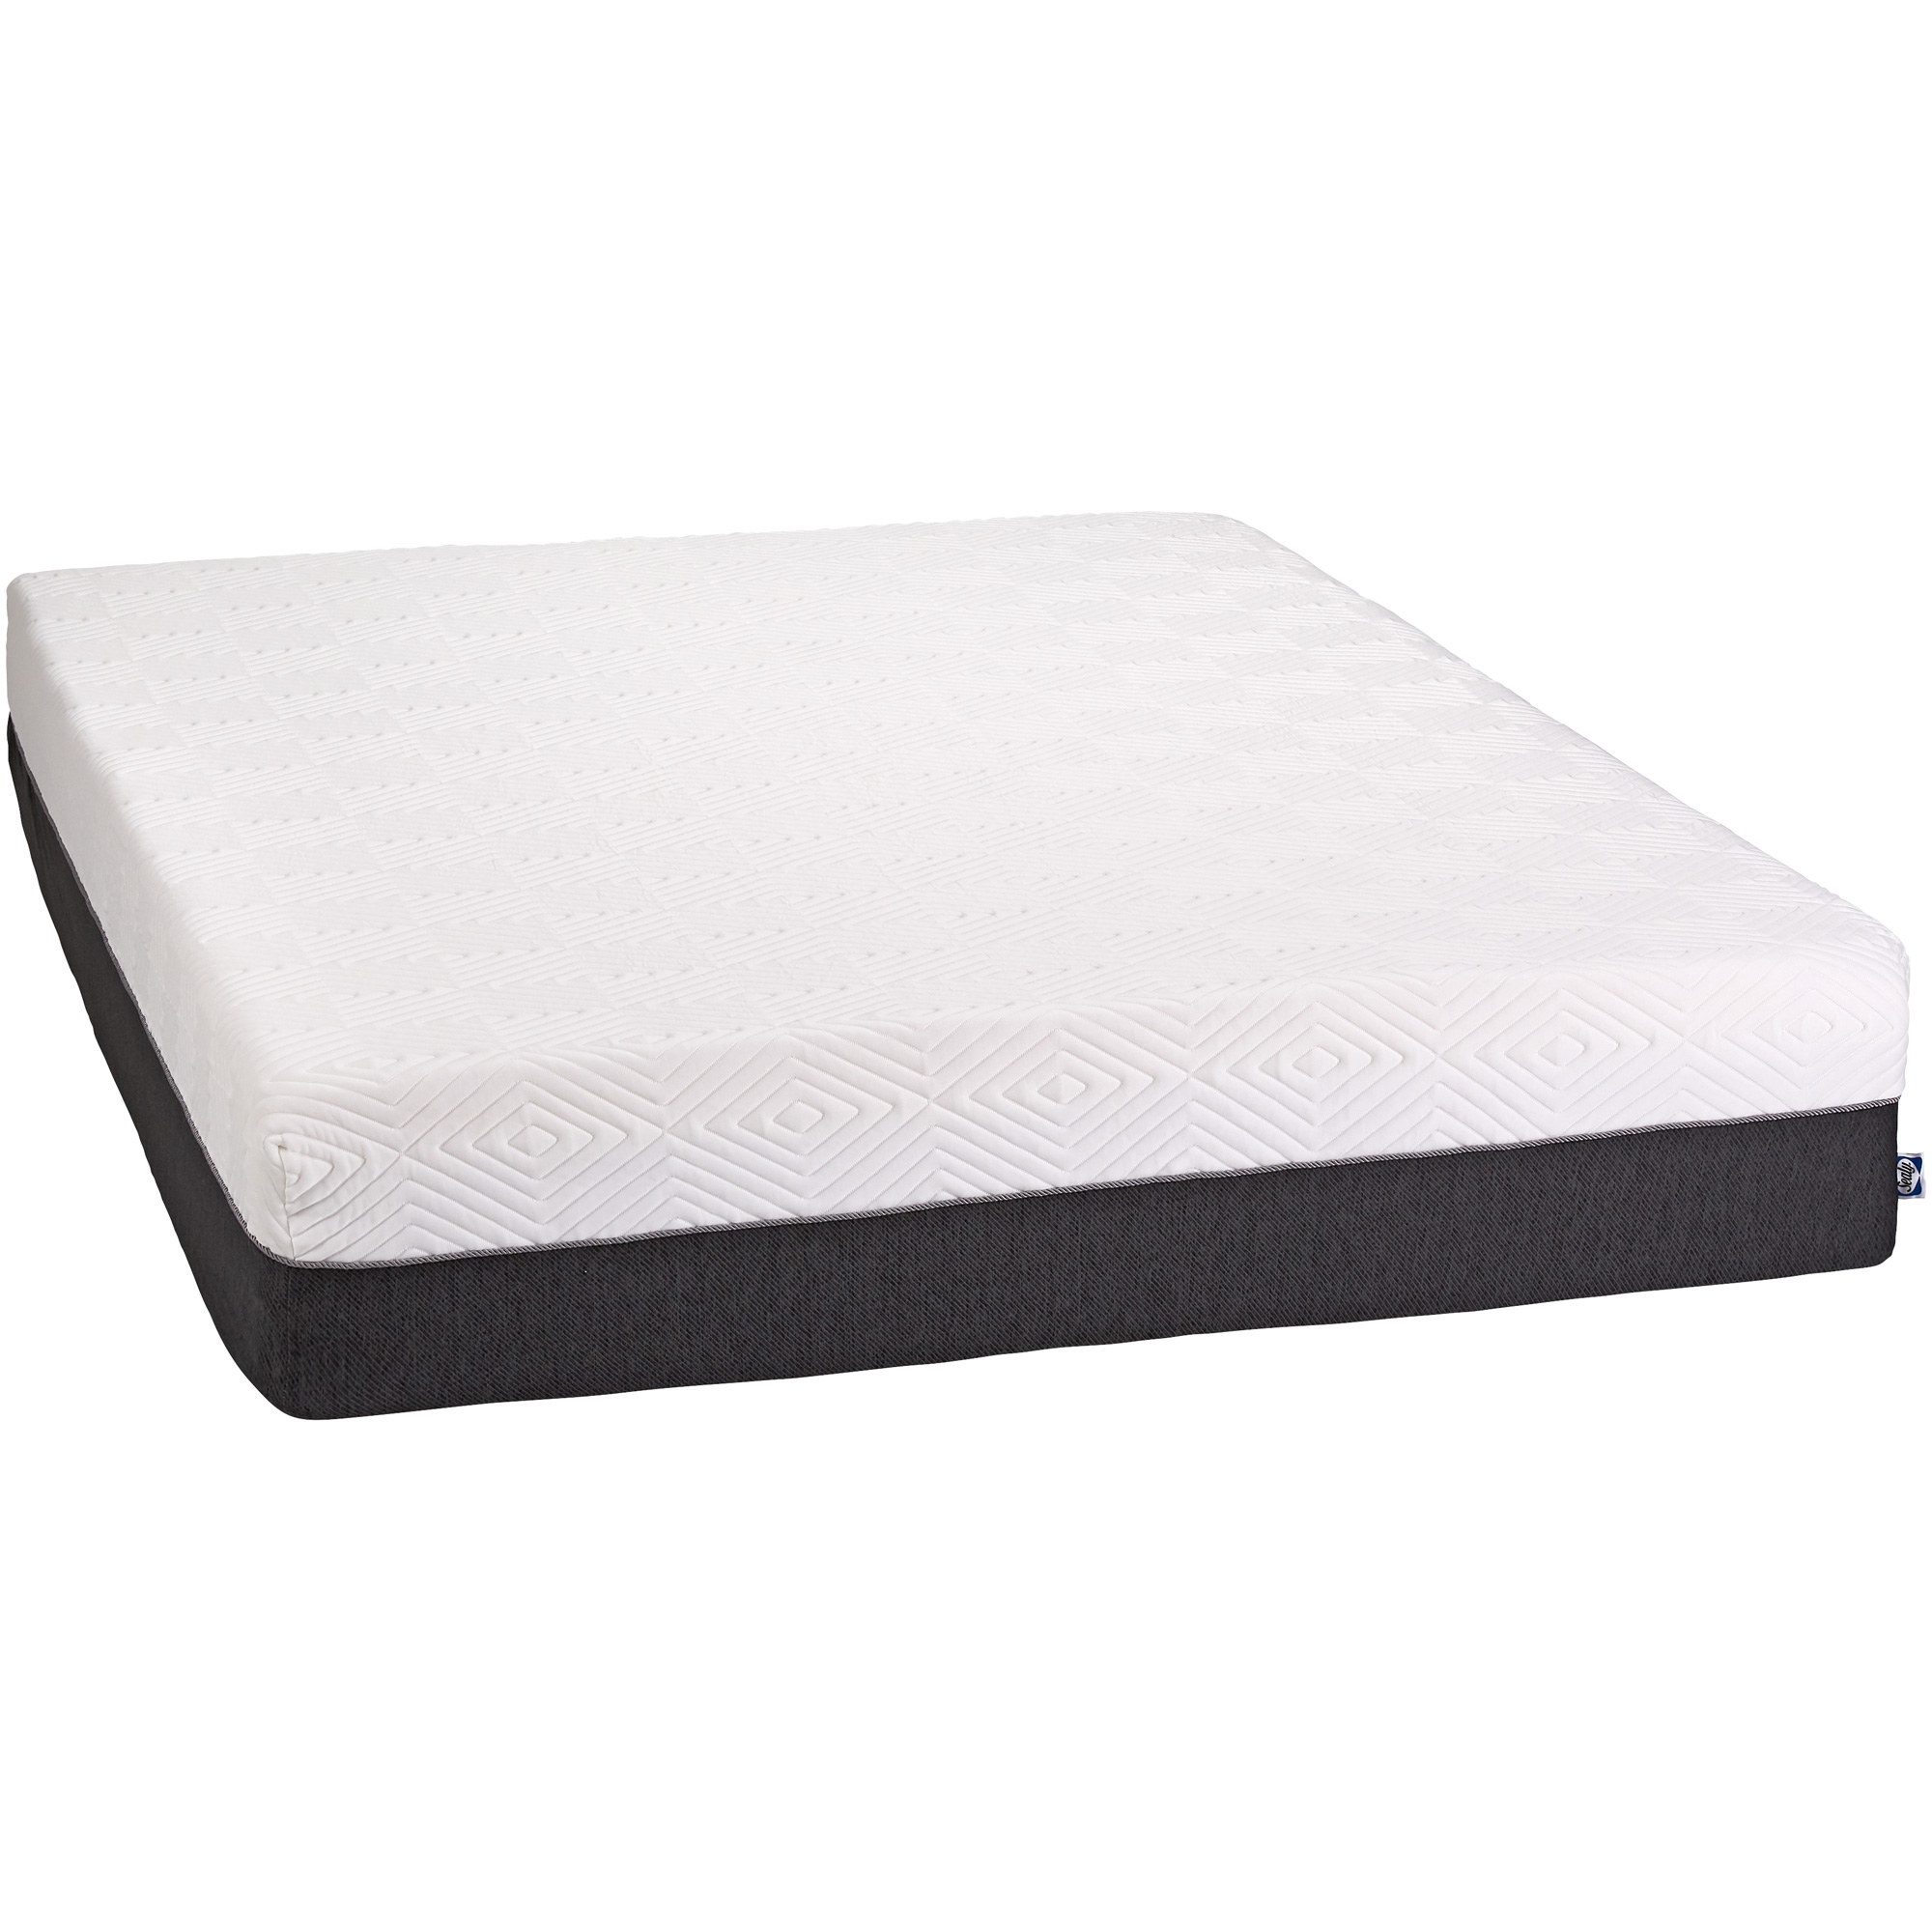 """Slumbercrest 12"""" Hybrid King Mattress in a Box"""